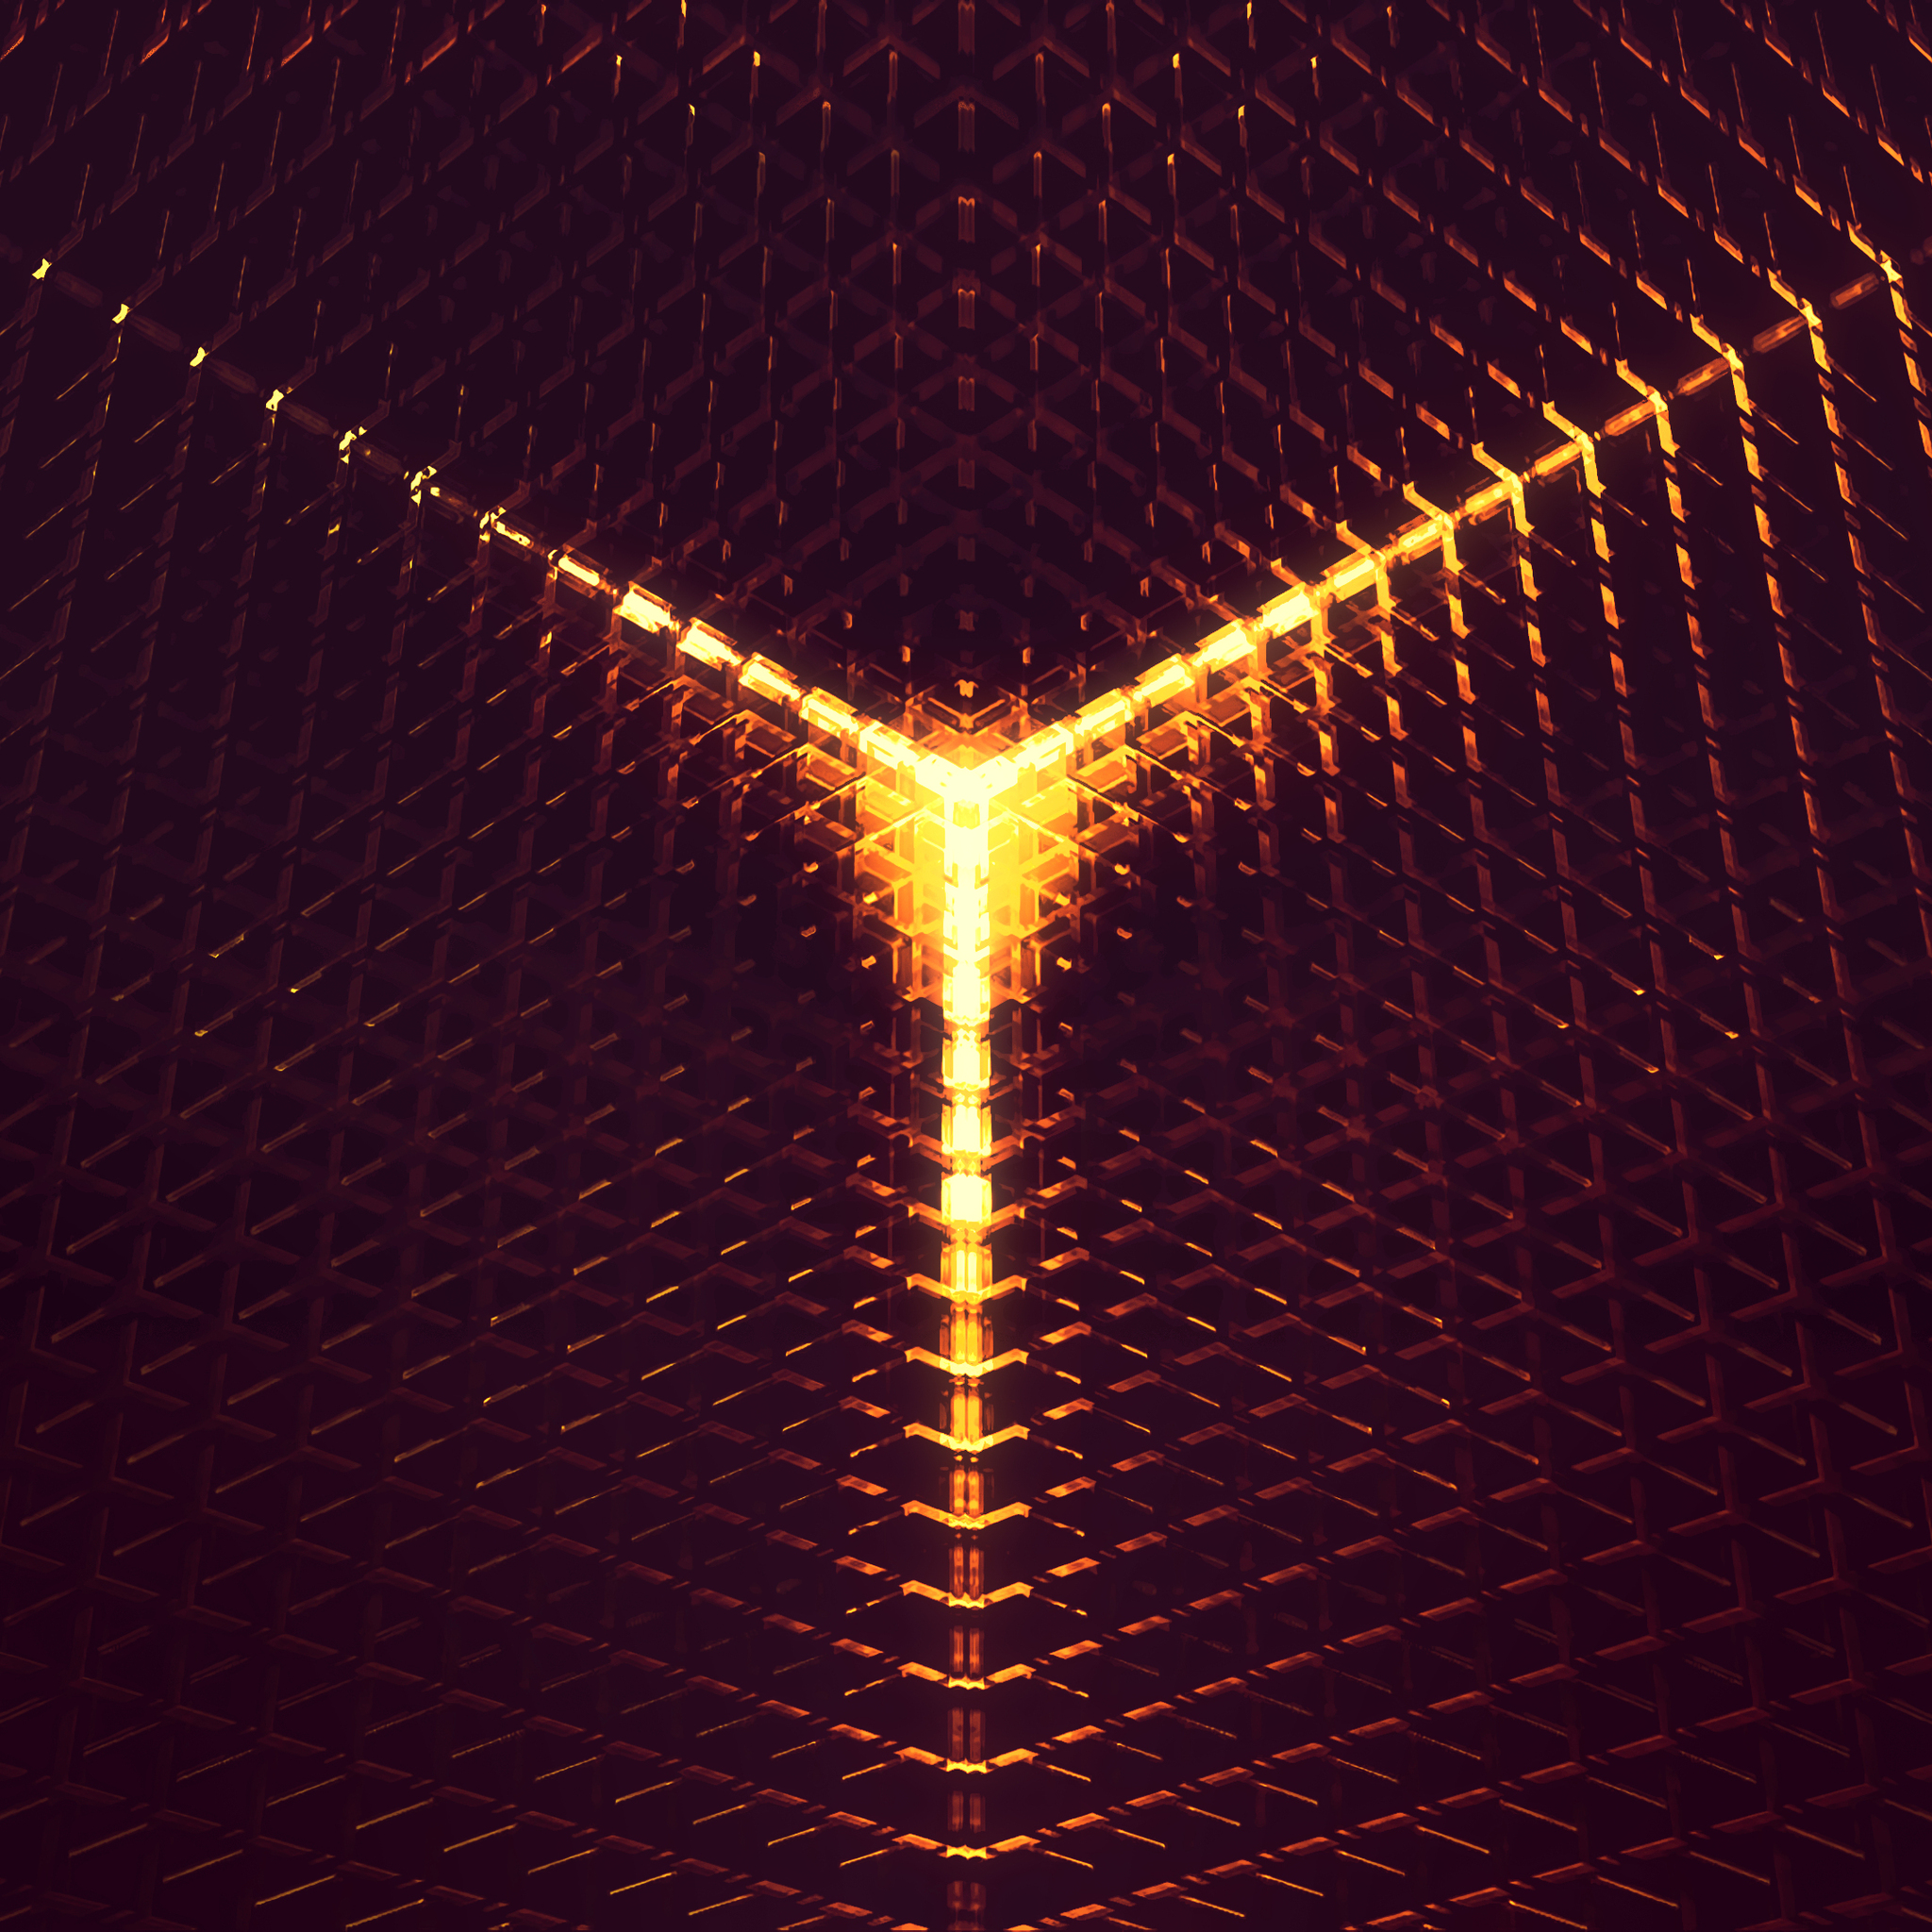 3d-abstract-digital-art-orange-light-4k-oo.jpg